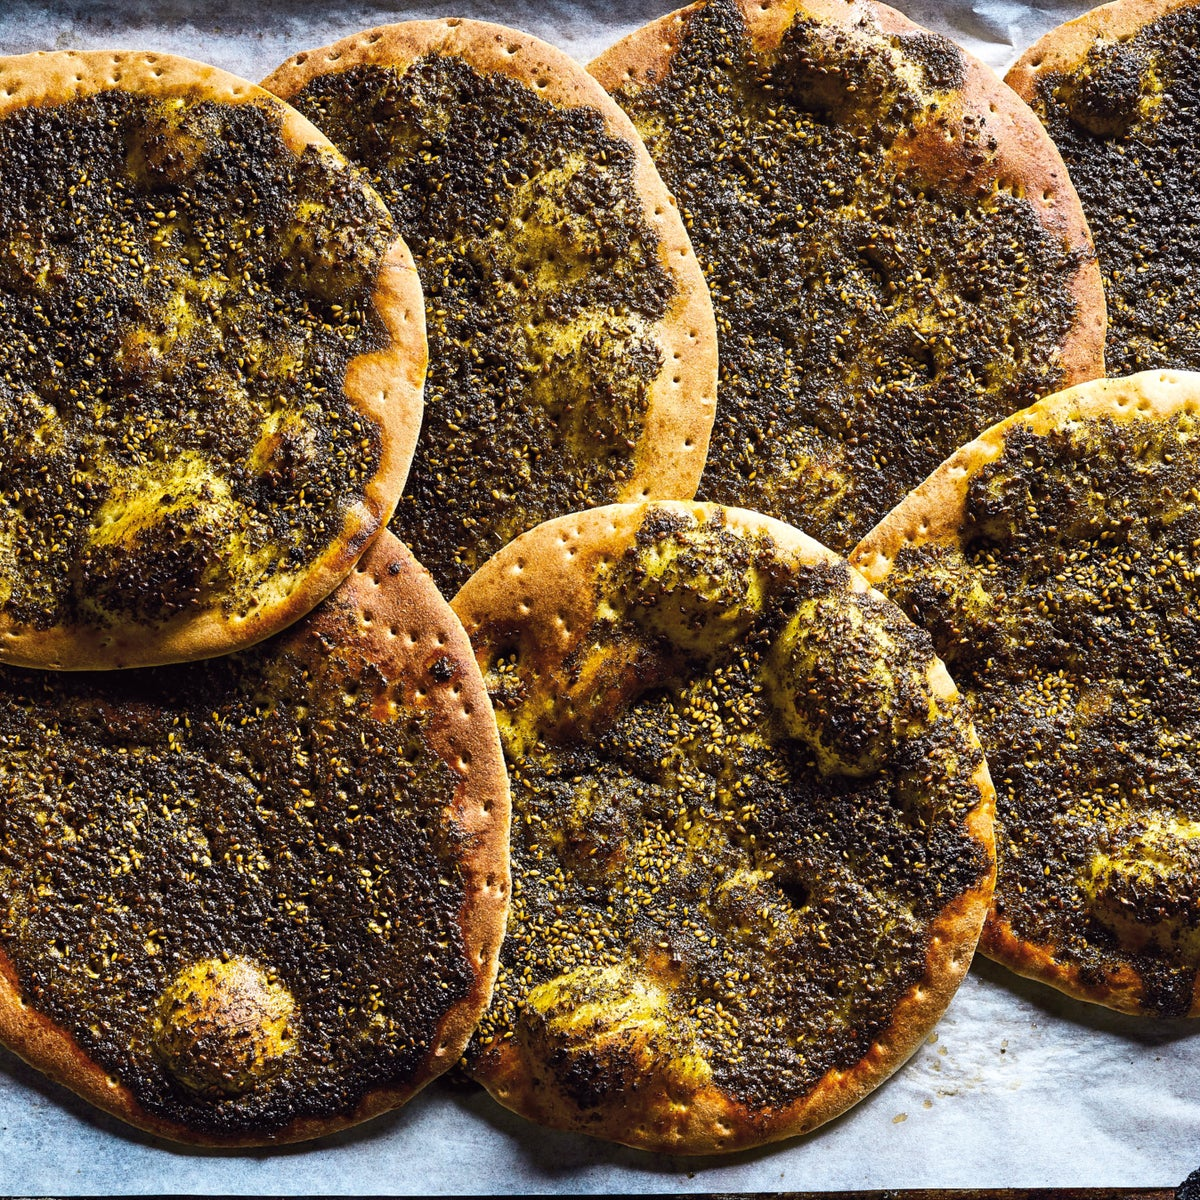 Manakish with olive oil and za'atar.